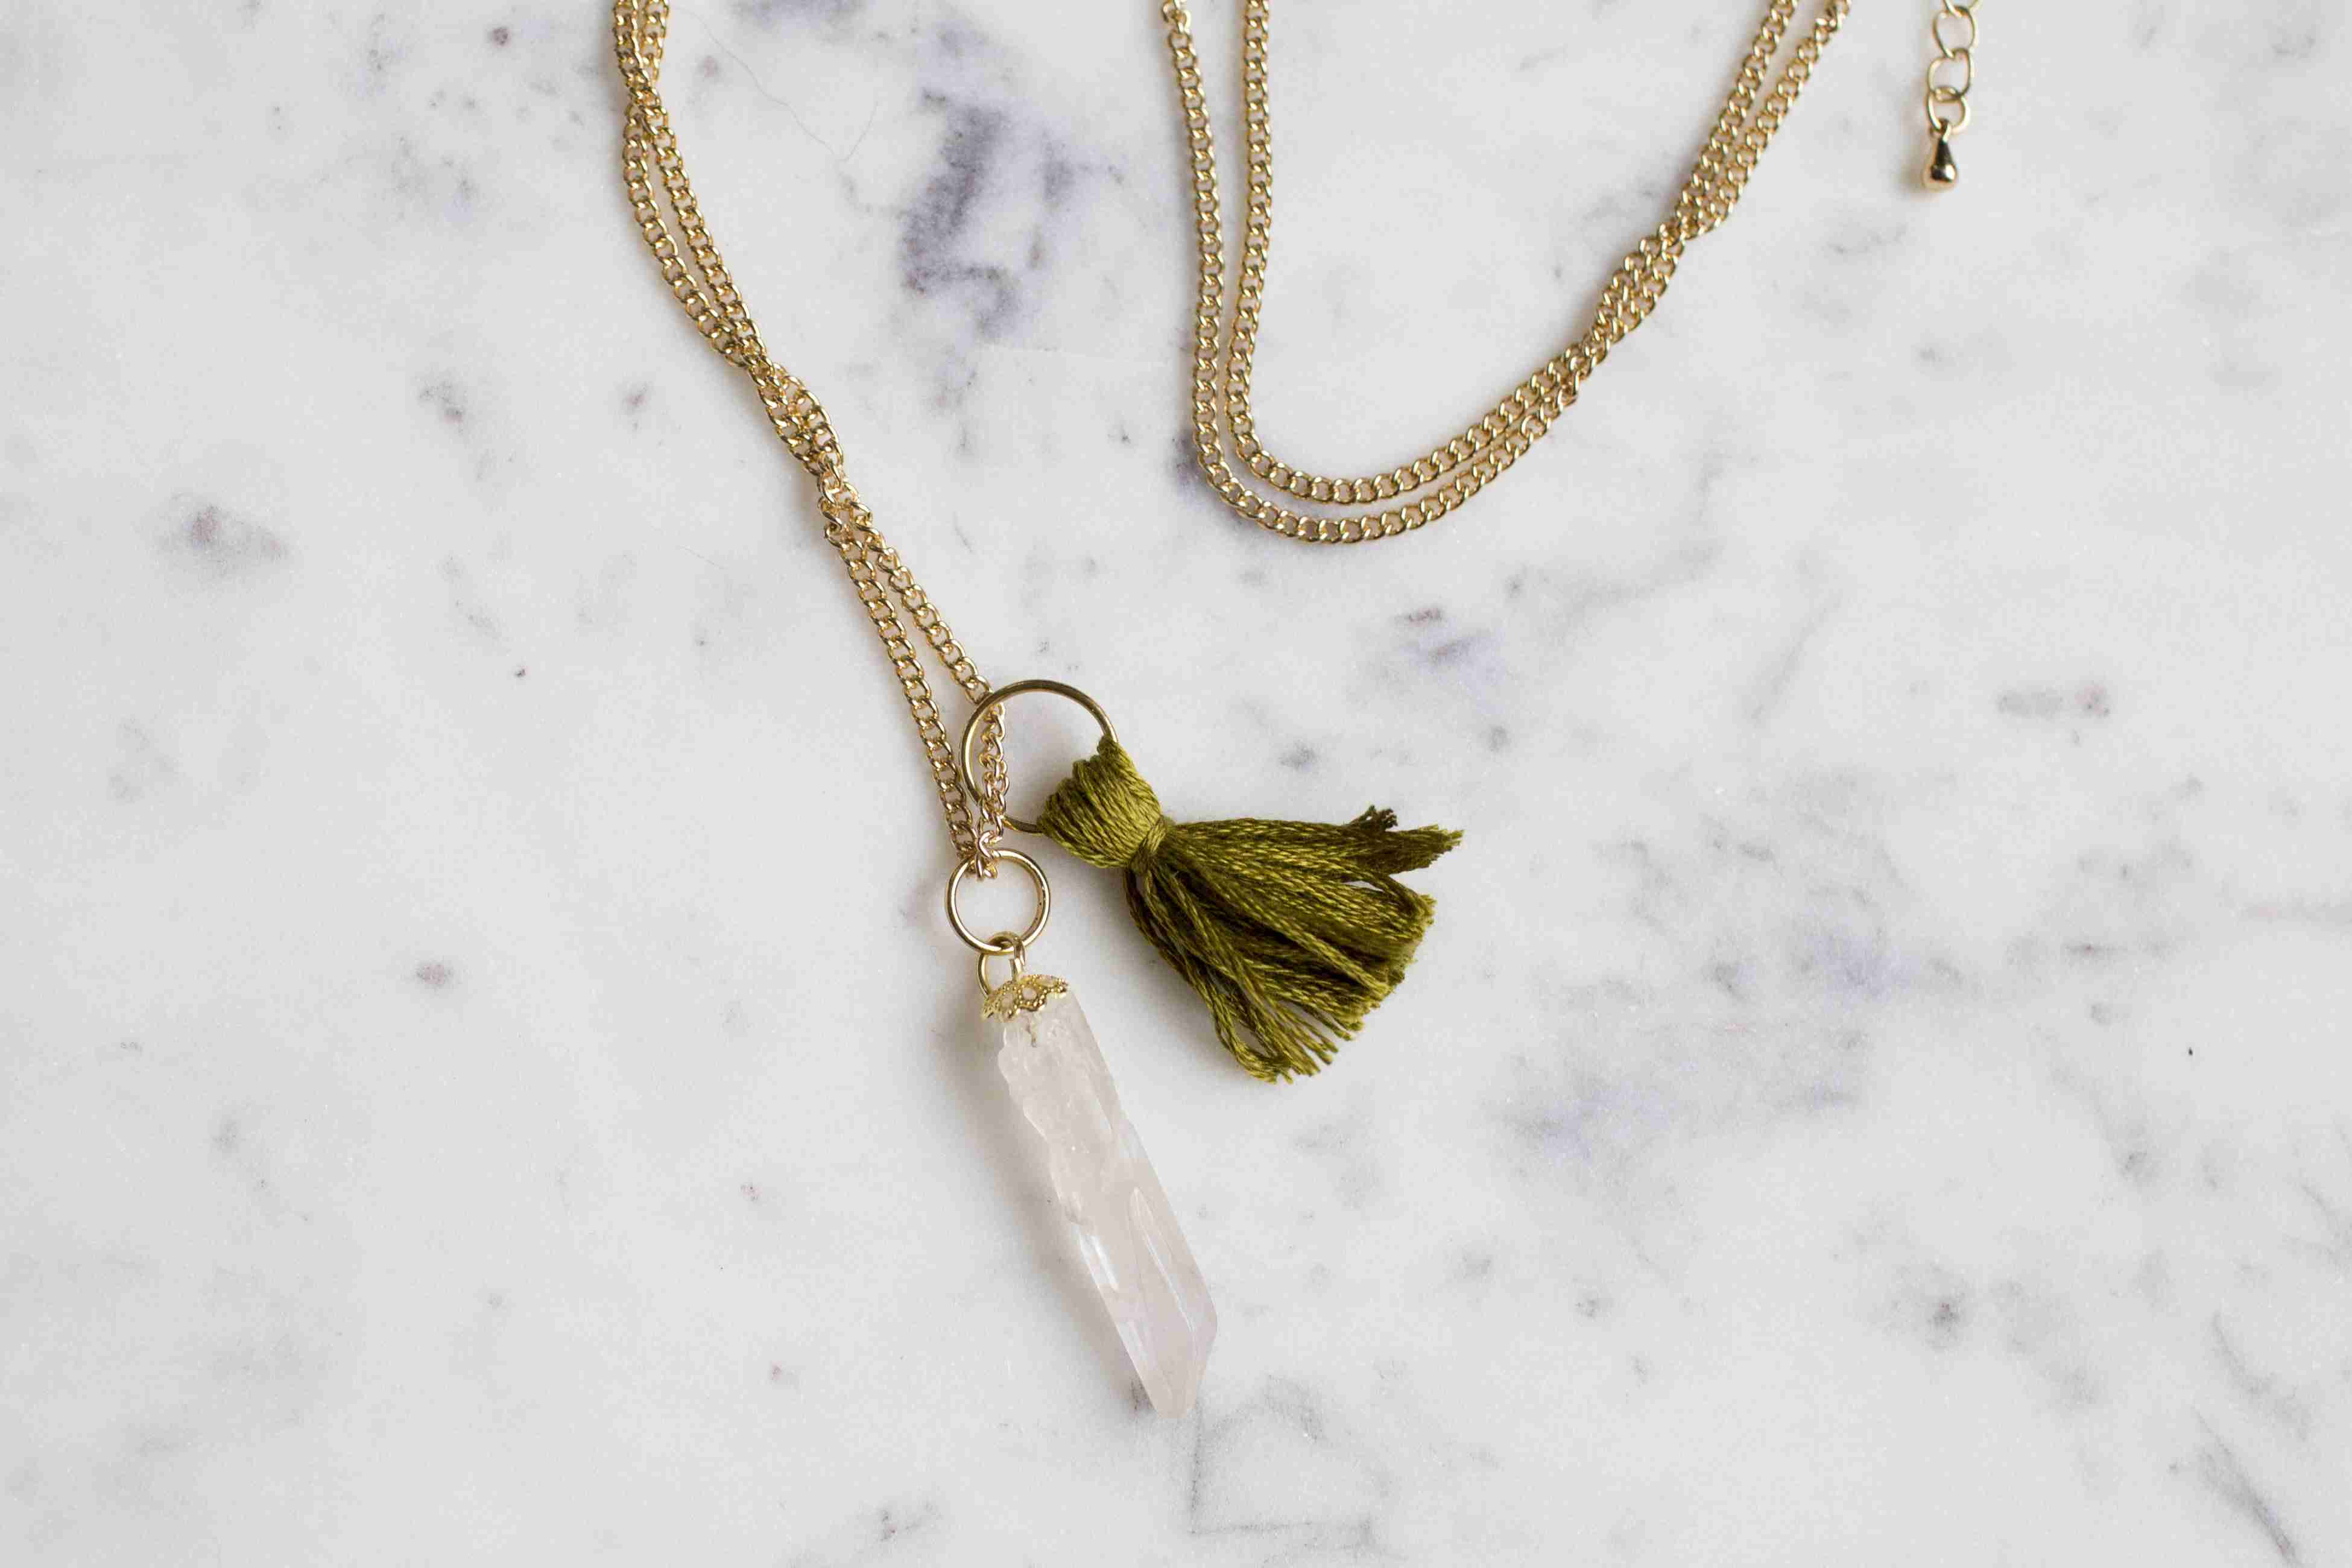 Finished stone and tassel necklace